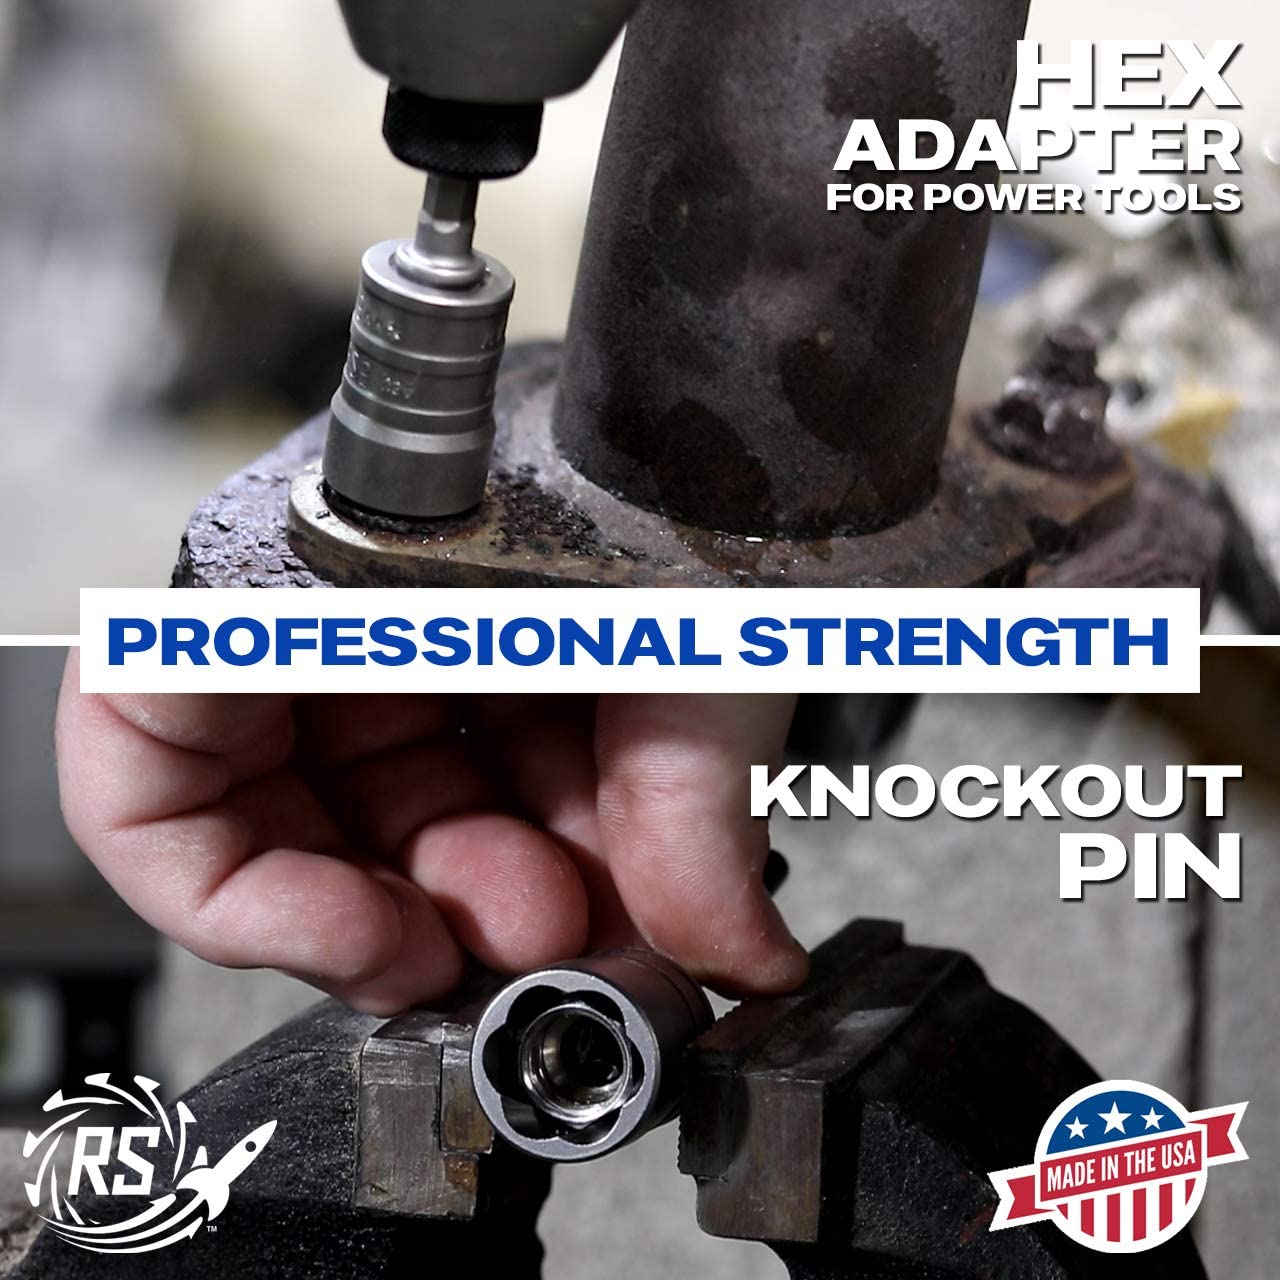 ROCKETSOCKET Rounded-Off Bolts 100/% USA Steel 1//4 Drive Extraction Socket Set Nuts /& Screws Rusted Removes Frozen fits 11 sizes of SAE /& Metric Made in USA 8 pieces